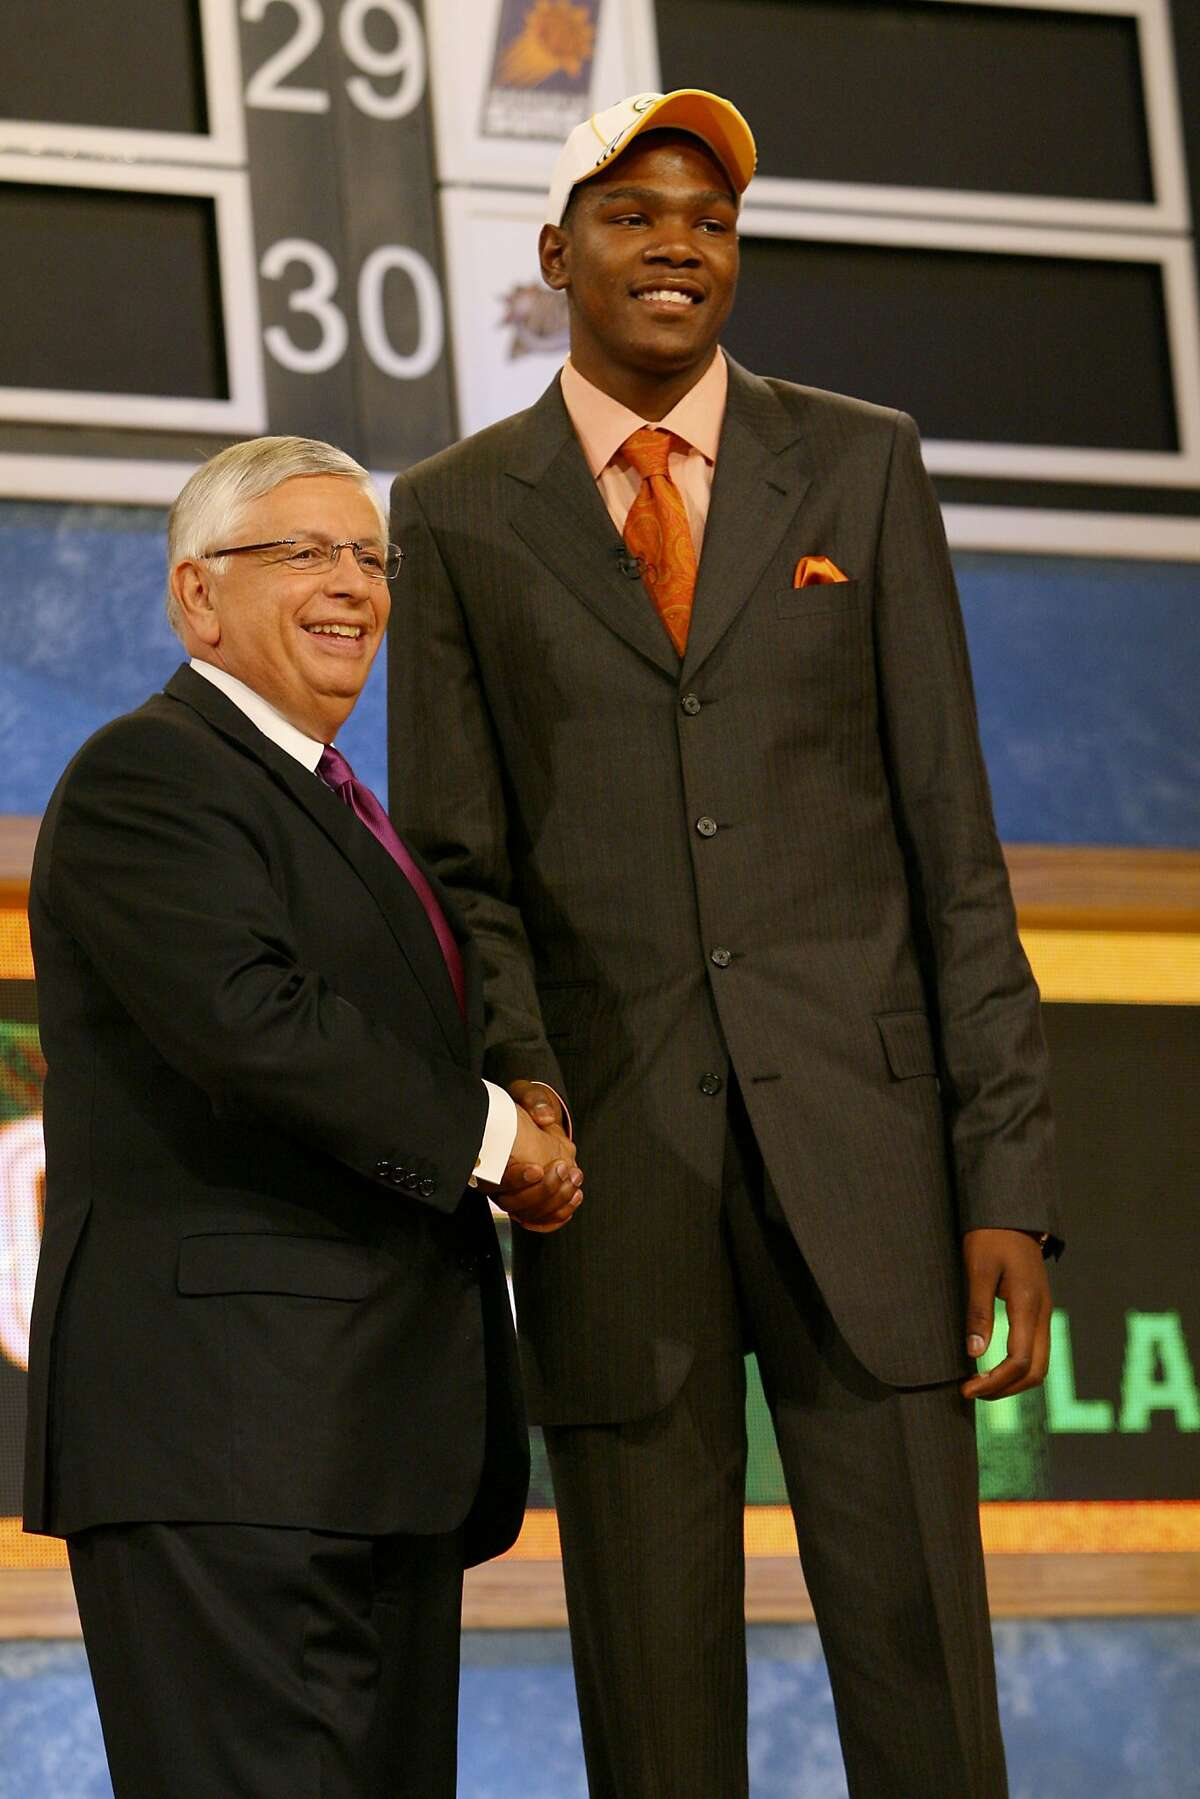 The Seattle SuperSonics selected Durant with the No. 2 pick in the 2007 NBA Draft.